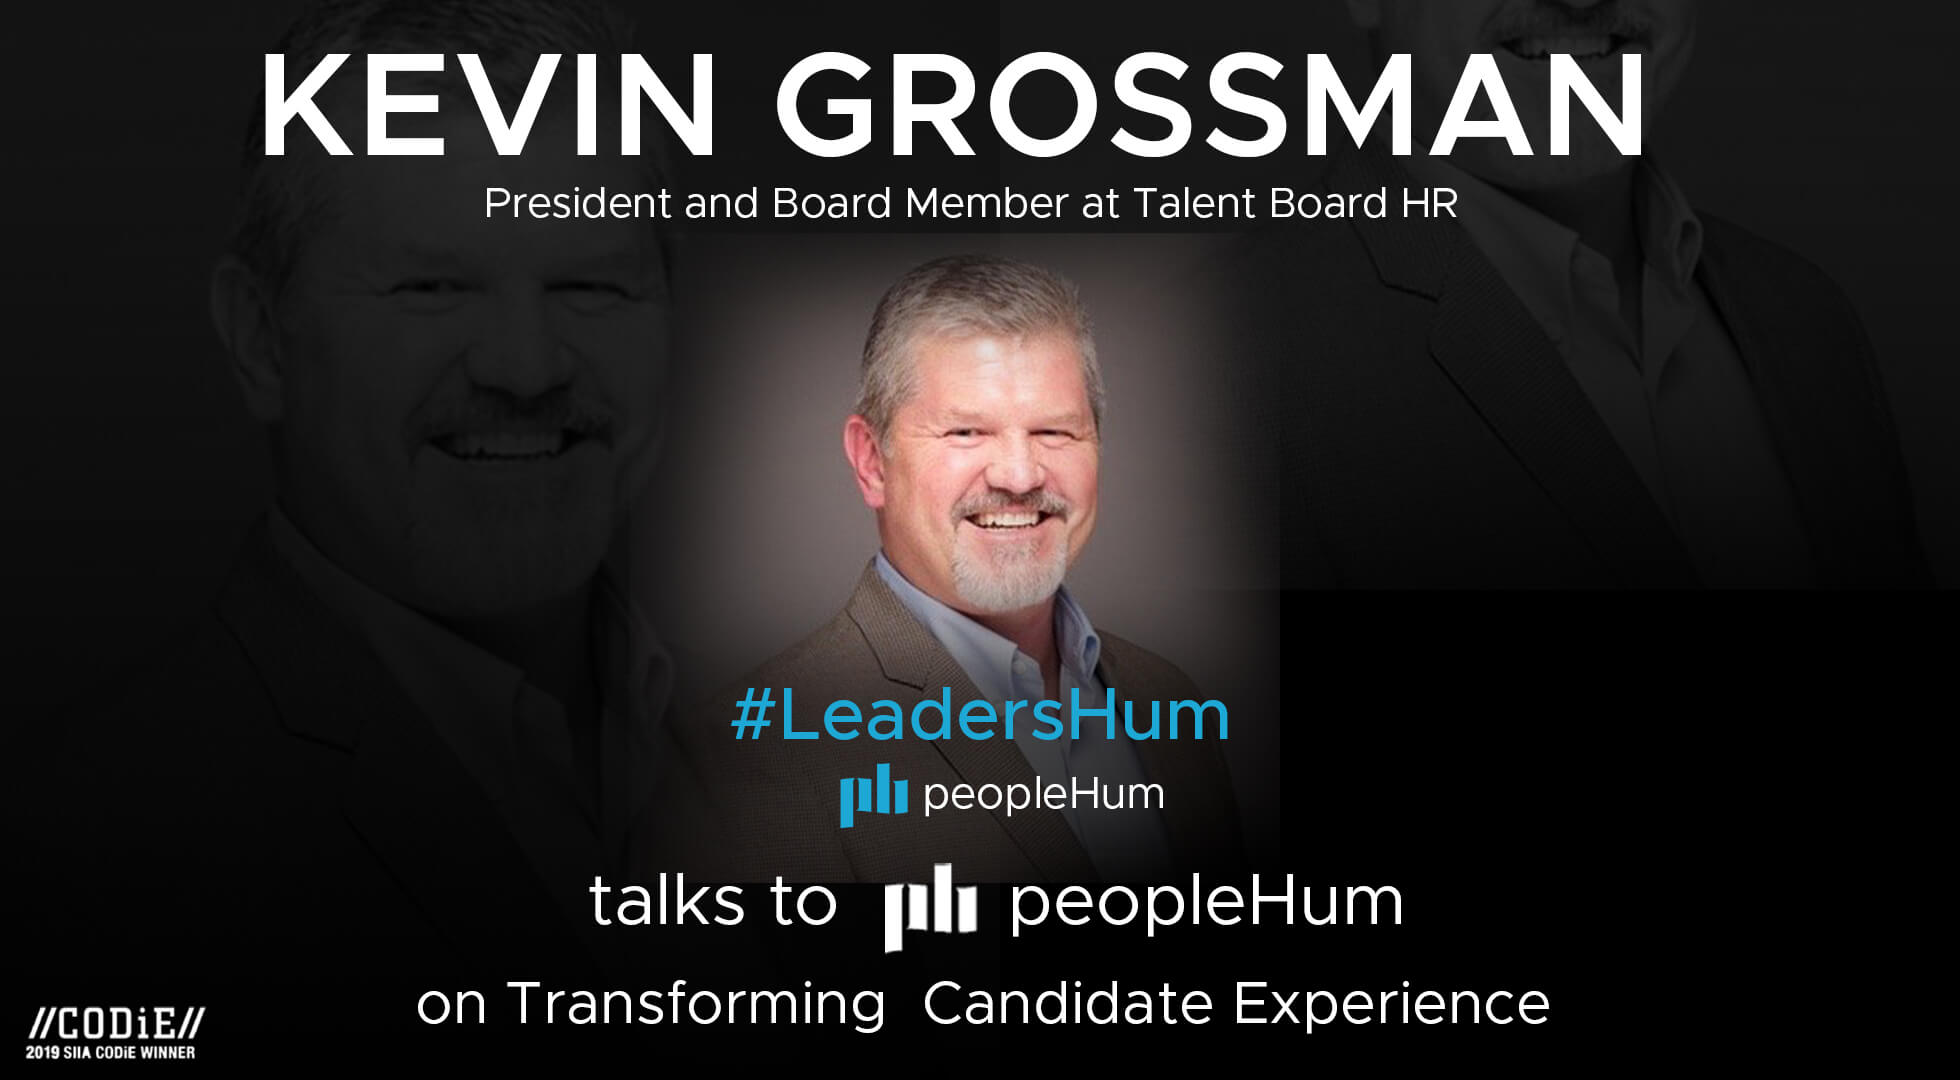 The future of candidate experience - Kevin Grossman [Interview]